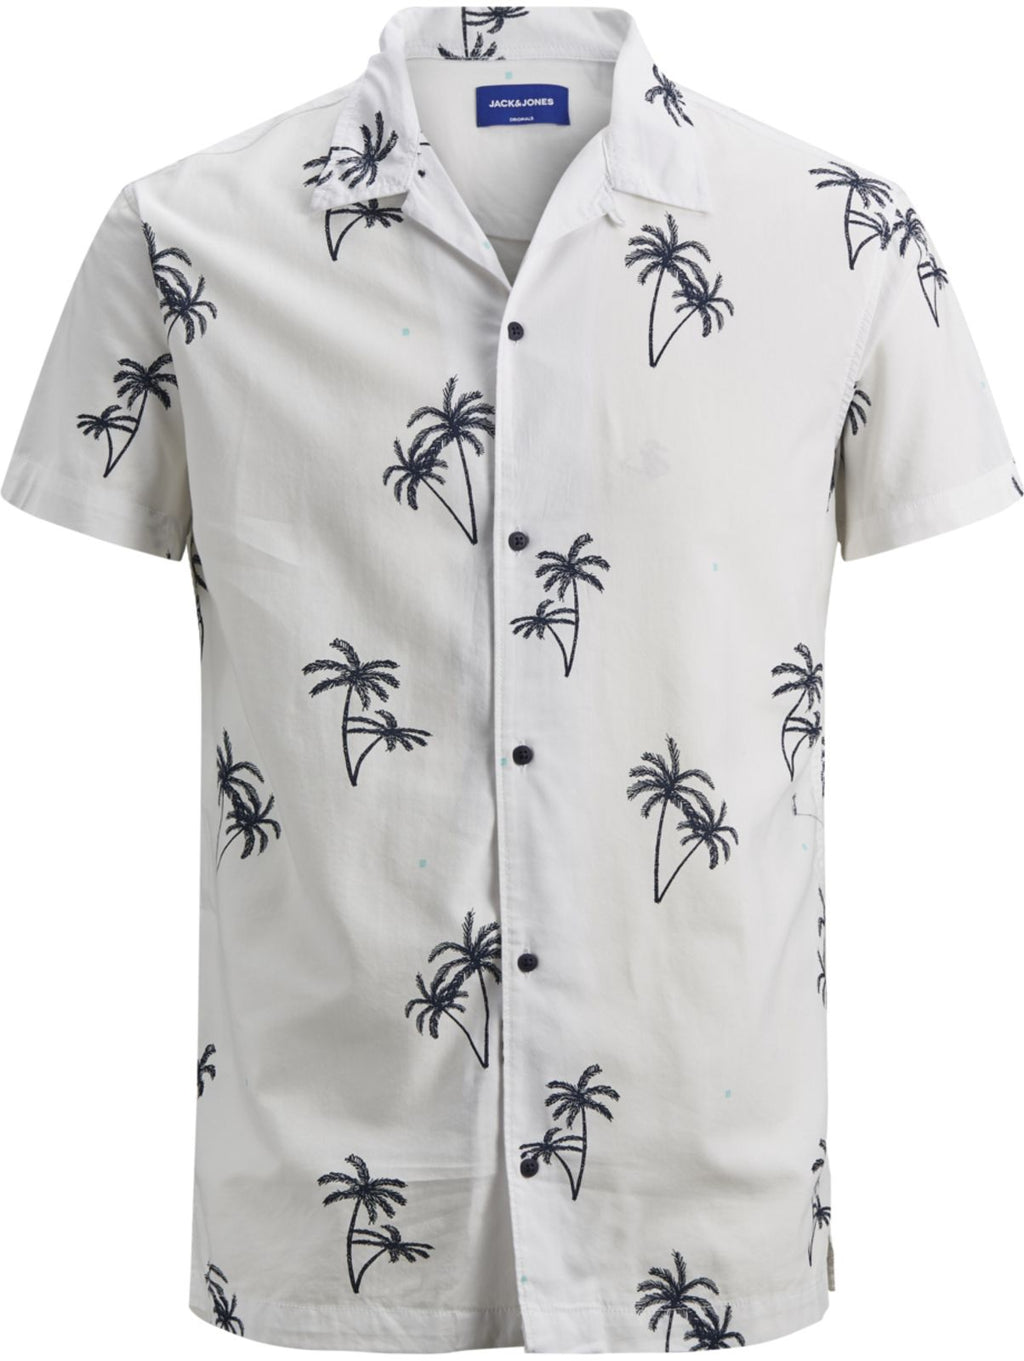 Jack & Jones Perry Short Sleeve Shirt